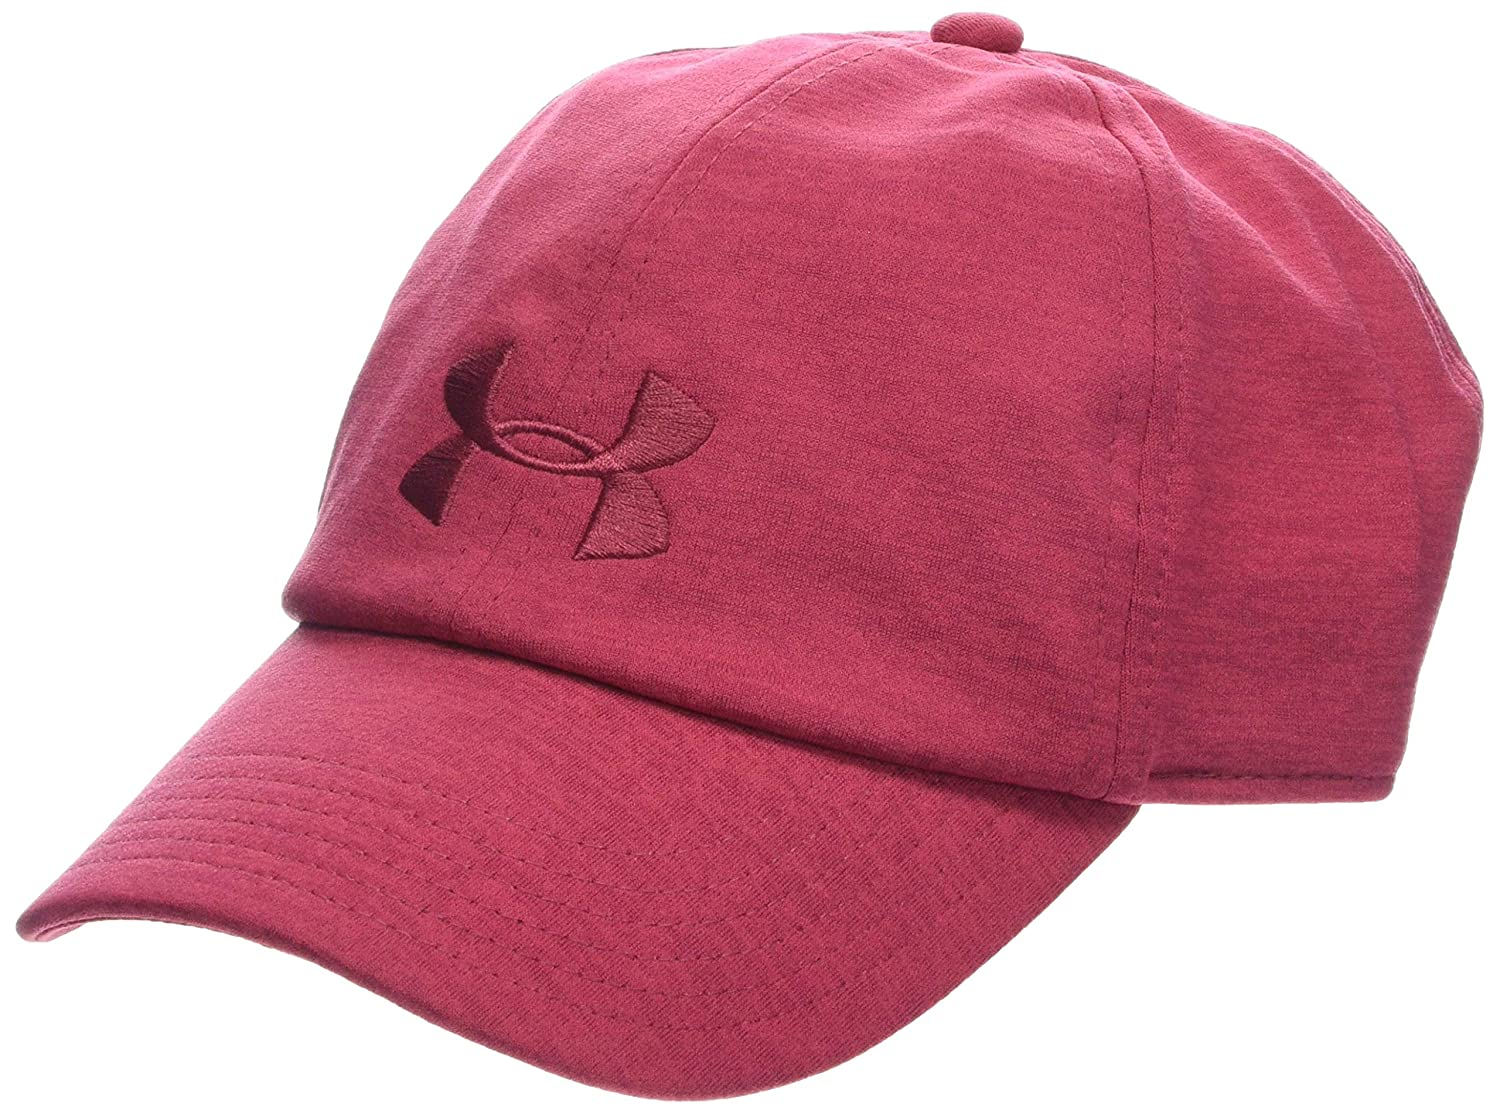 NWT Under Armour Camo Pink Cap for Ladies Style # 1238981-947 MSRP $24.99